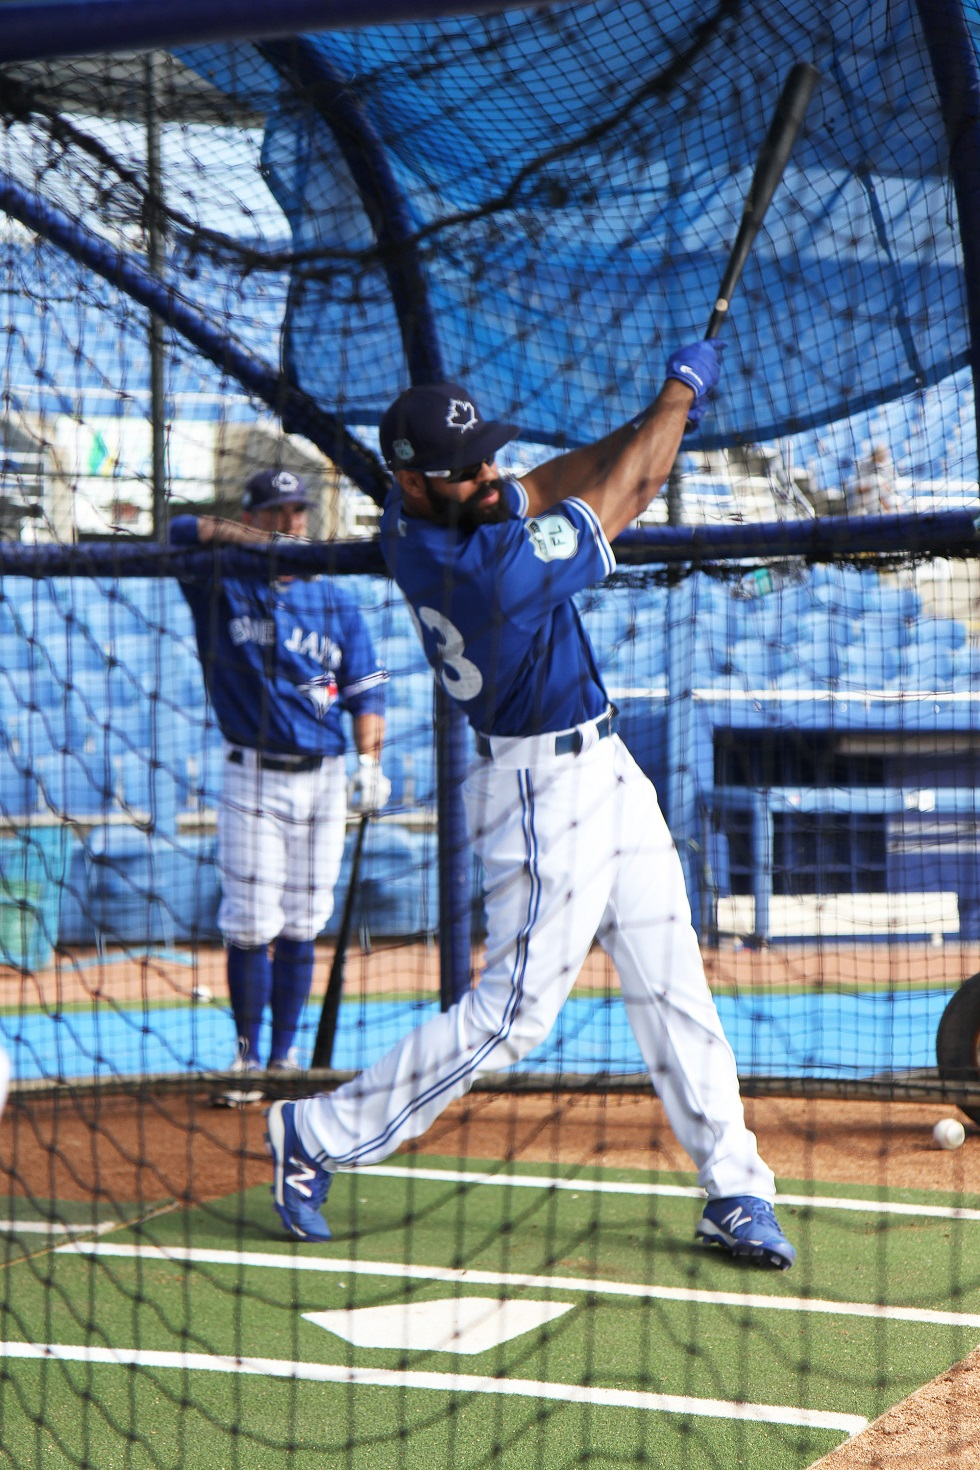 Blue Jays outfielder Dalton Pompey (Mississauga, Ont.), seen here taking batting practice in Dunedin, uses his platform as an athlete to help others. Photos: Matt Antonacci.